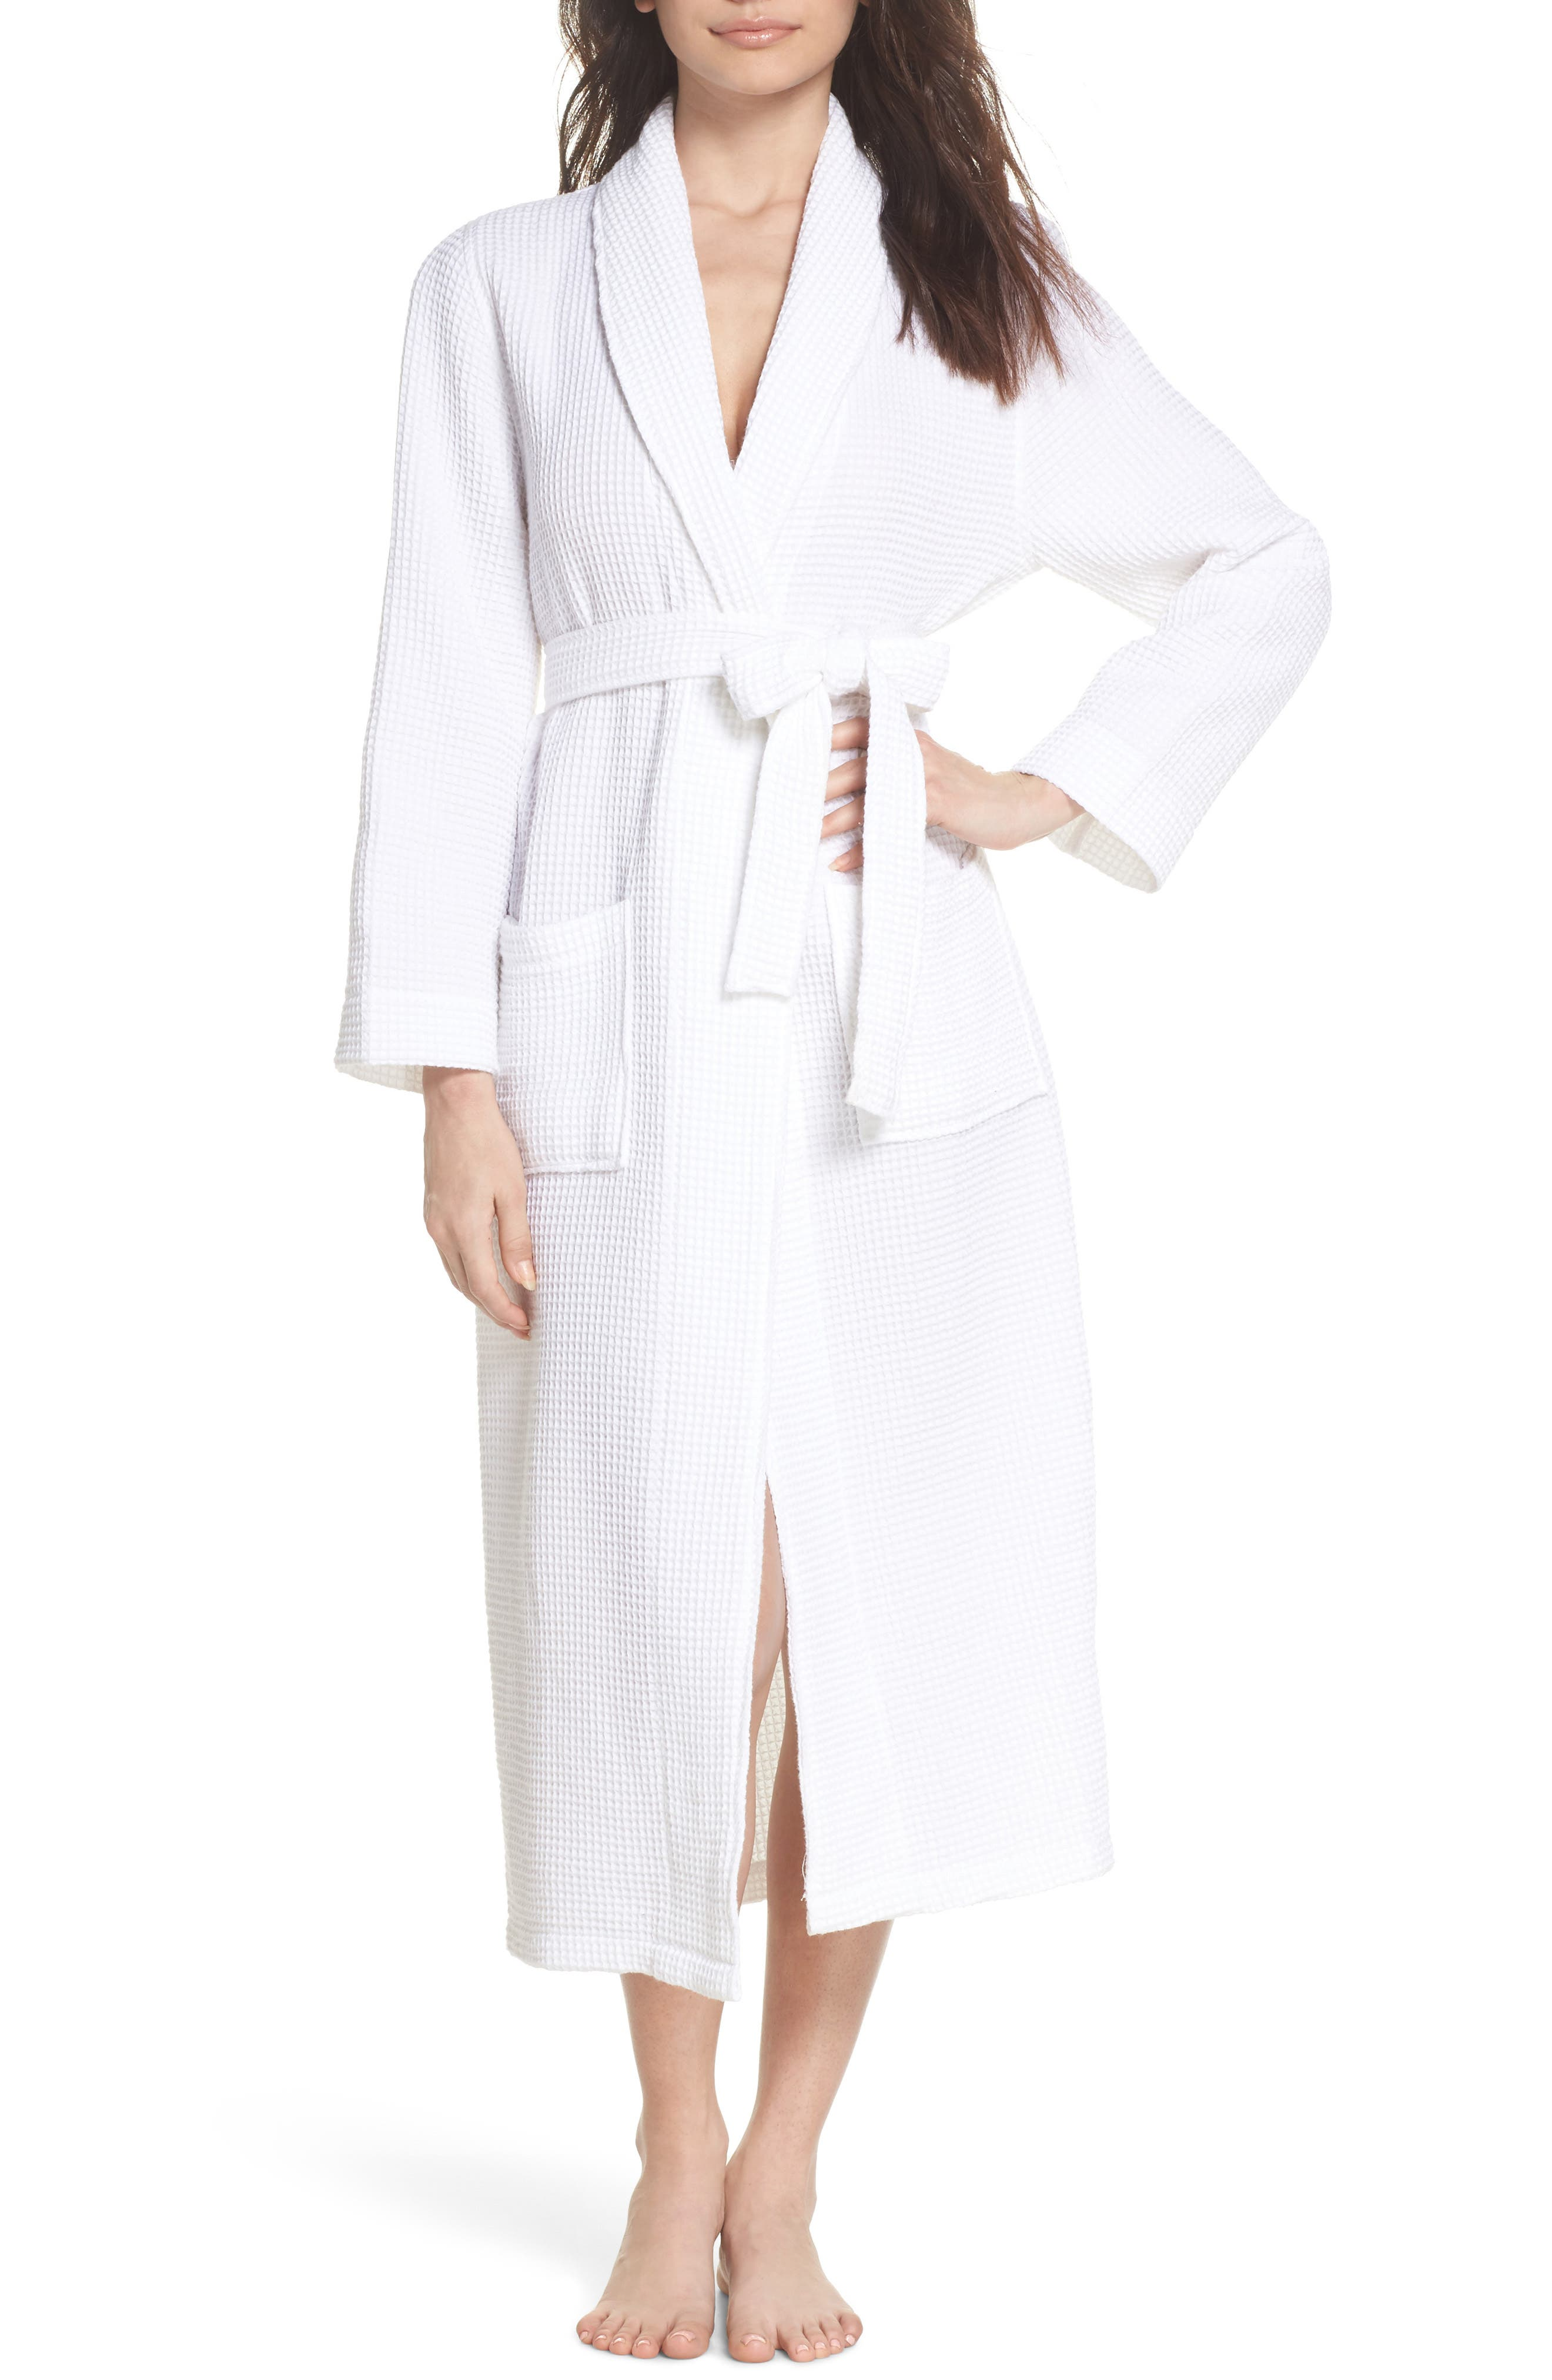 Main Image - Papinelle Cotton Waffle Knit Robe